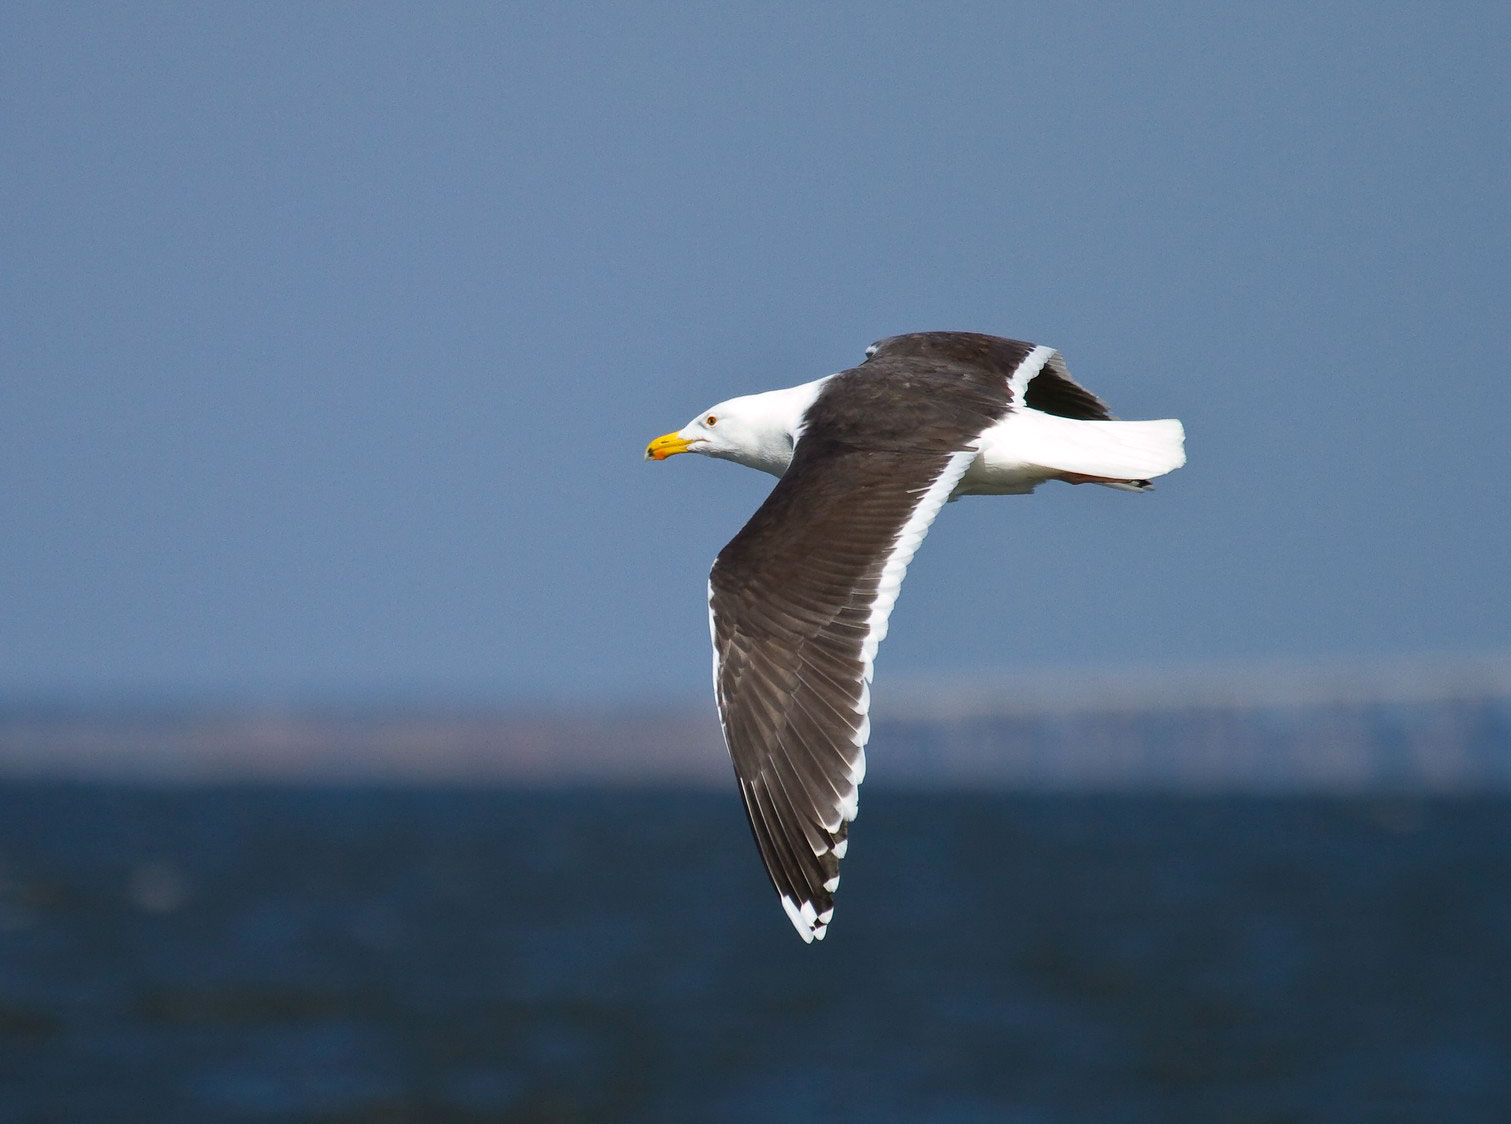 """Simplified tip no. 2: The Great Black-backed Gull is """"a fairly sedentary gull, spending much of its time loafing on the beach, resting on the water, or standing atop an elevated post or light fixture."""" Mark Eden/Great Backyard Bird Count"""